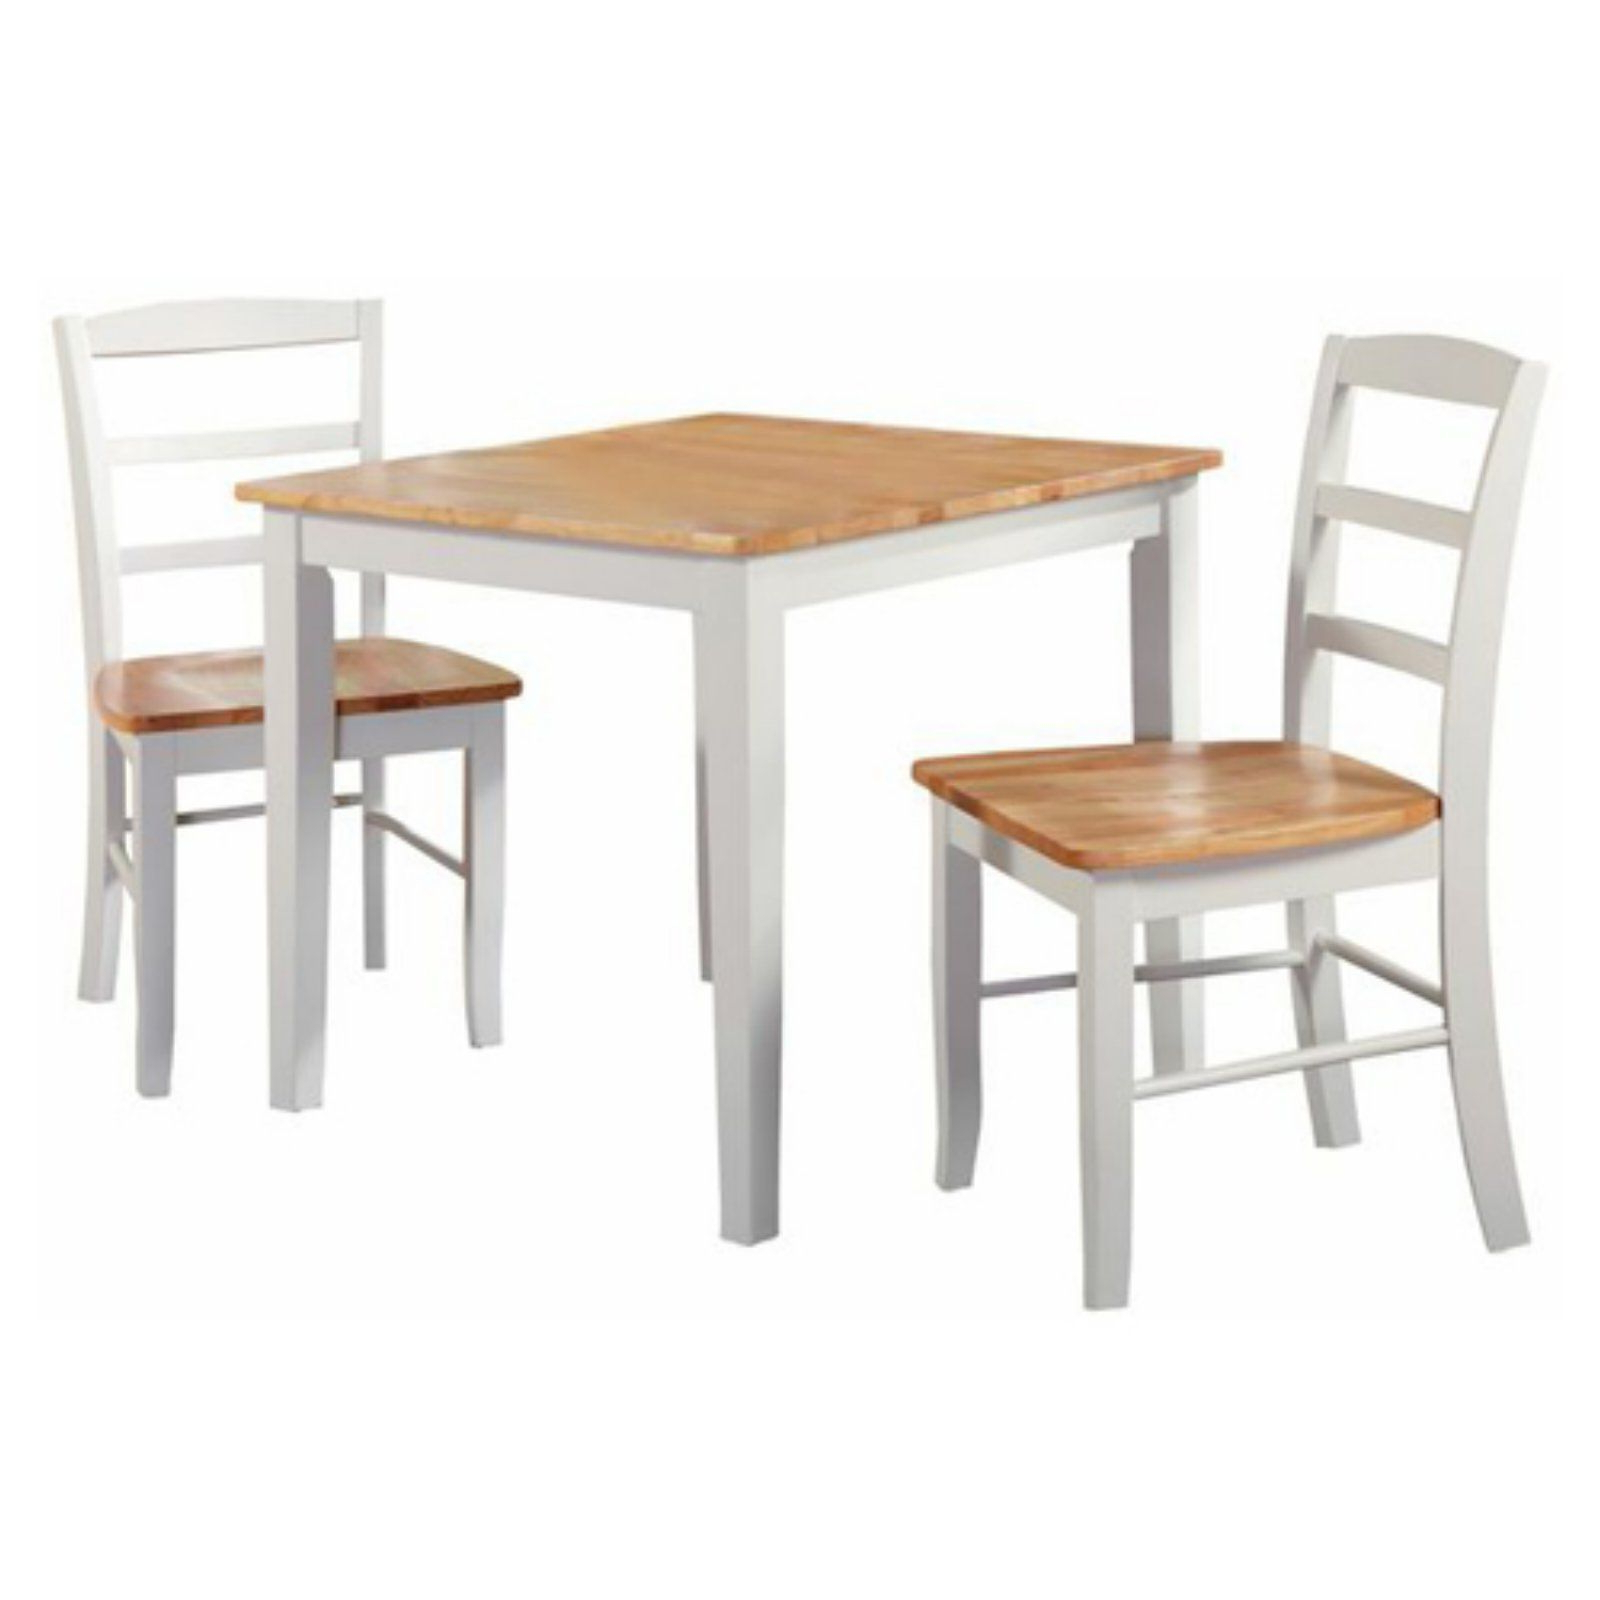 International Concepts Silerton 3 Piece Dining Table Set regarding Well-known 3 Pieces Dining Tables And Chair Set